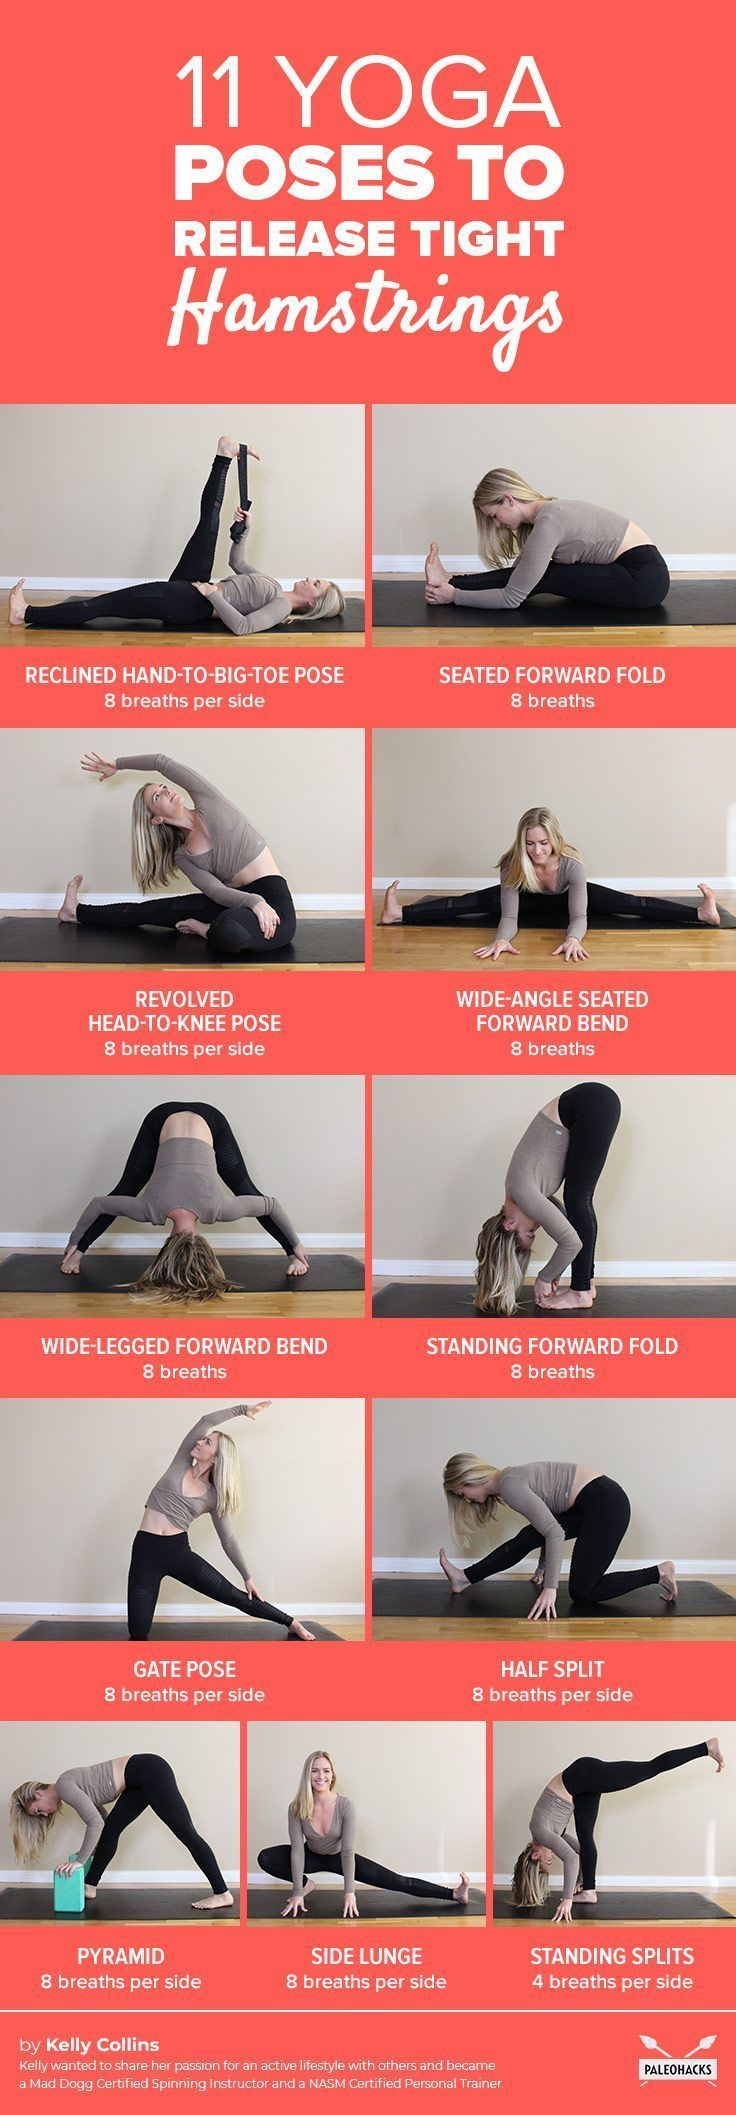 This Gentle Yoga Sequence Will Give You the Deepest Stretch in Your Hamstrings Yetdeepest